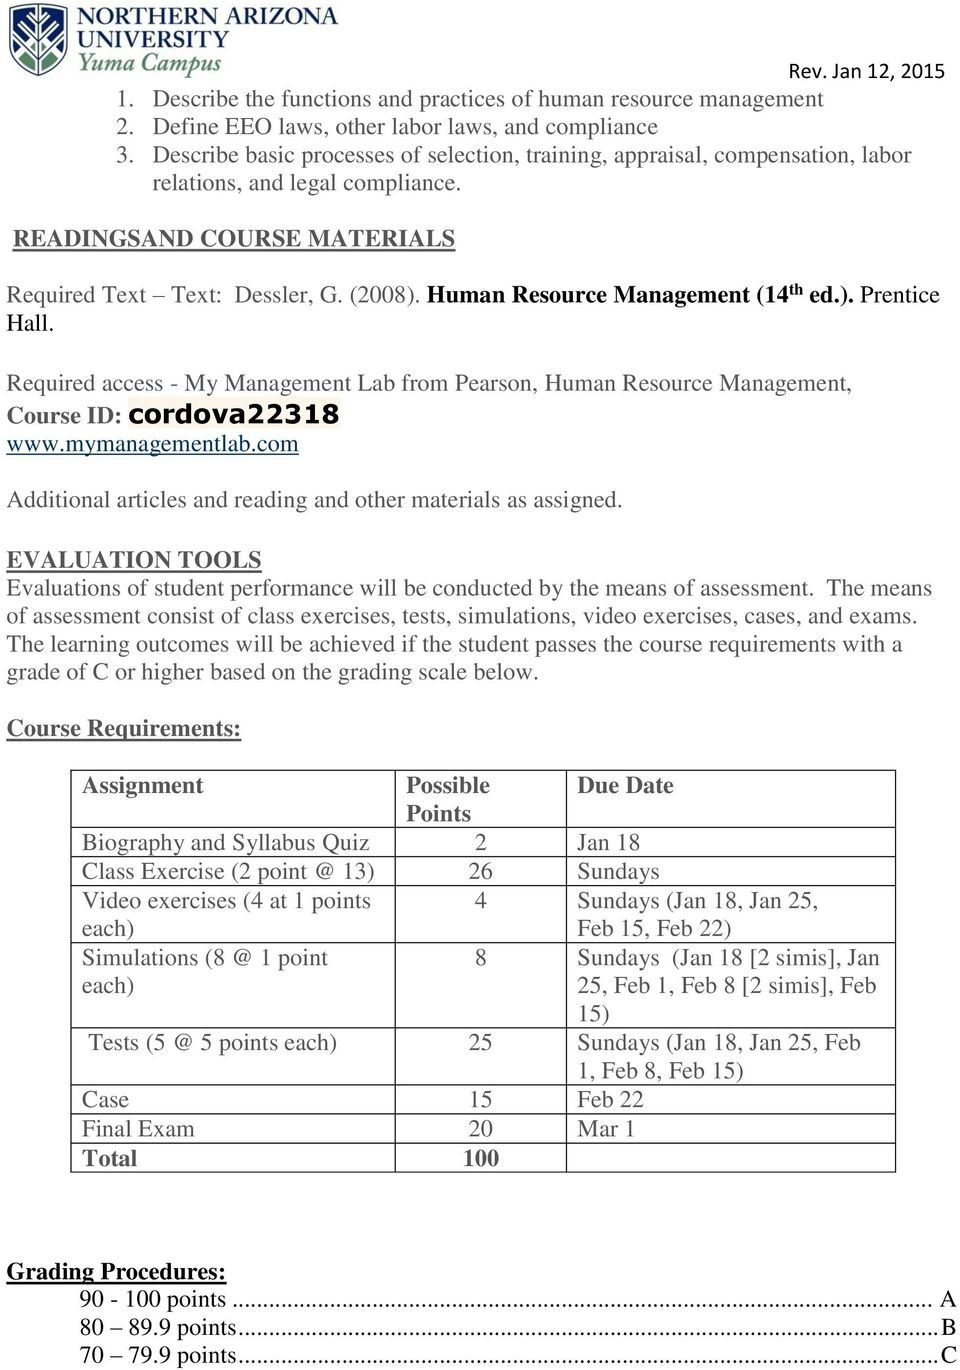 Human Resource Management (14 th ed.). Prentice Hall. Required access - My Management Lab from Pearson, Human Resource Management, Course ID: cordova22318 www.mymanagementlab.